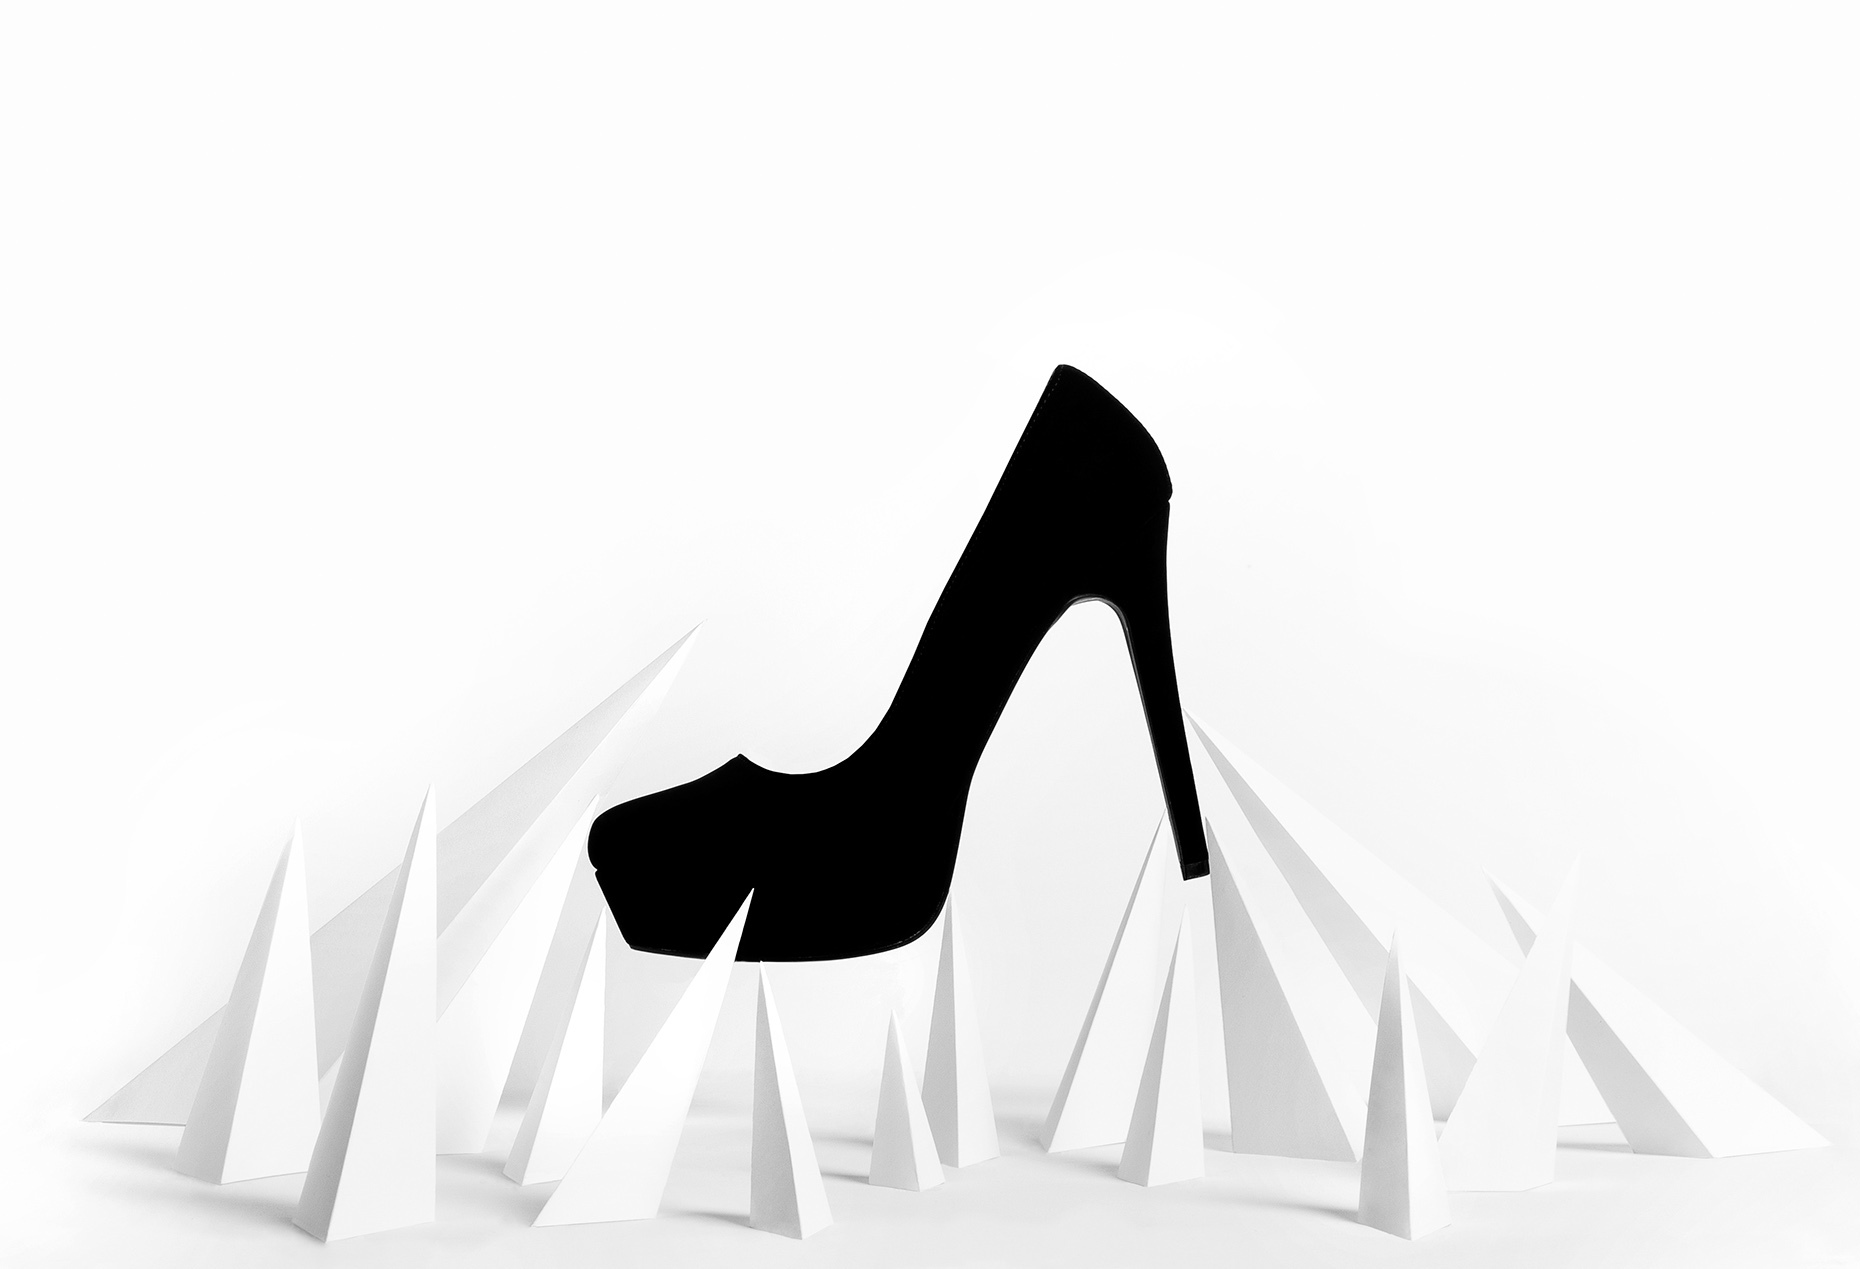 Creative-Product-Image-Black-High-Heel_RHanelPhotography-White-Spikes_forPhotoFolio